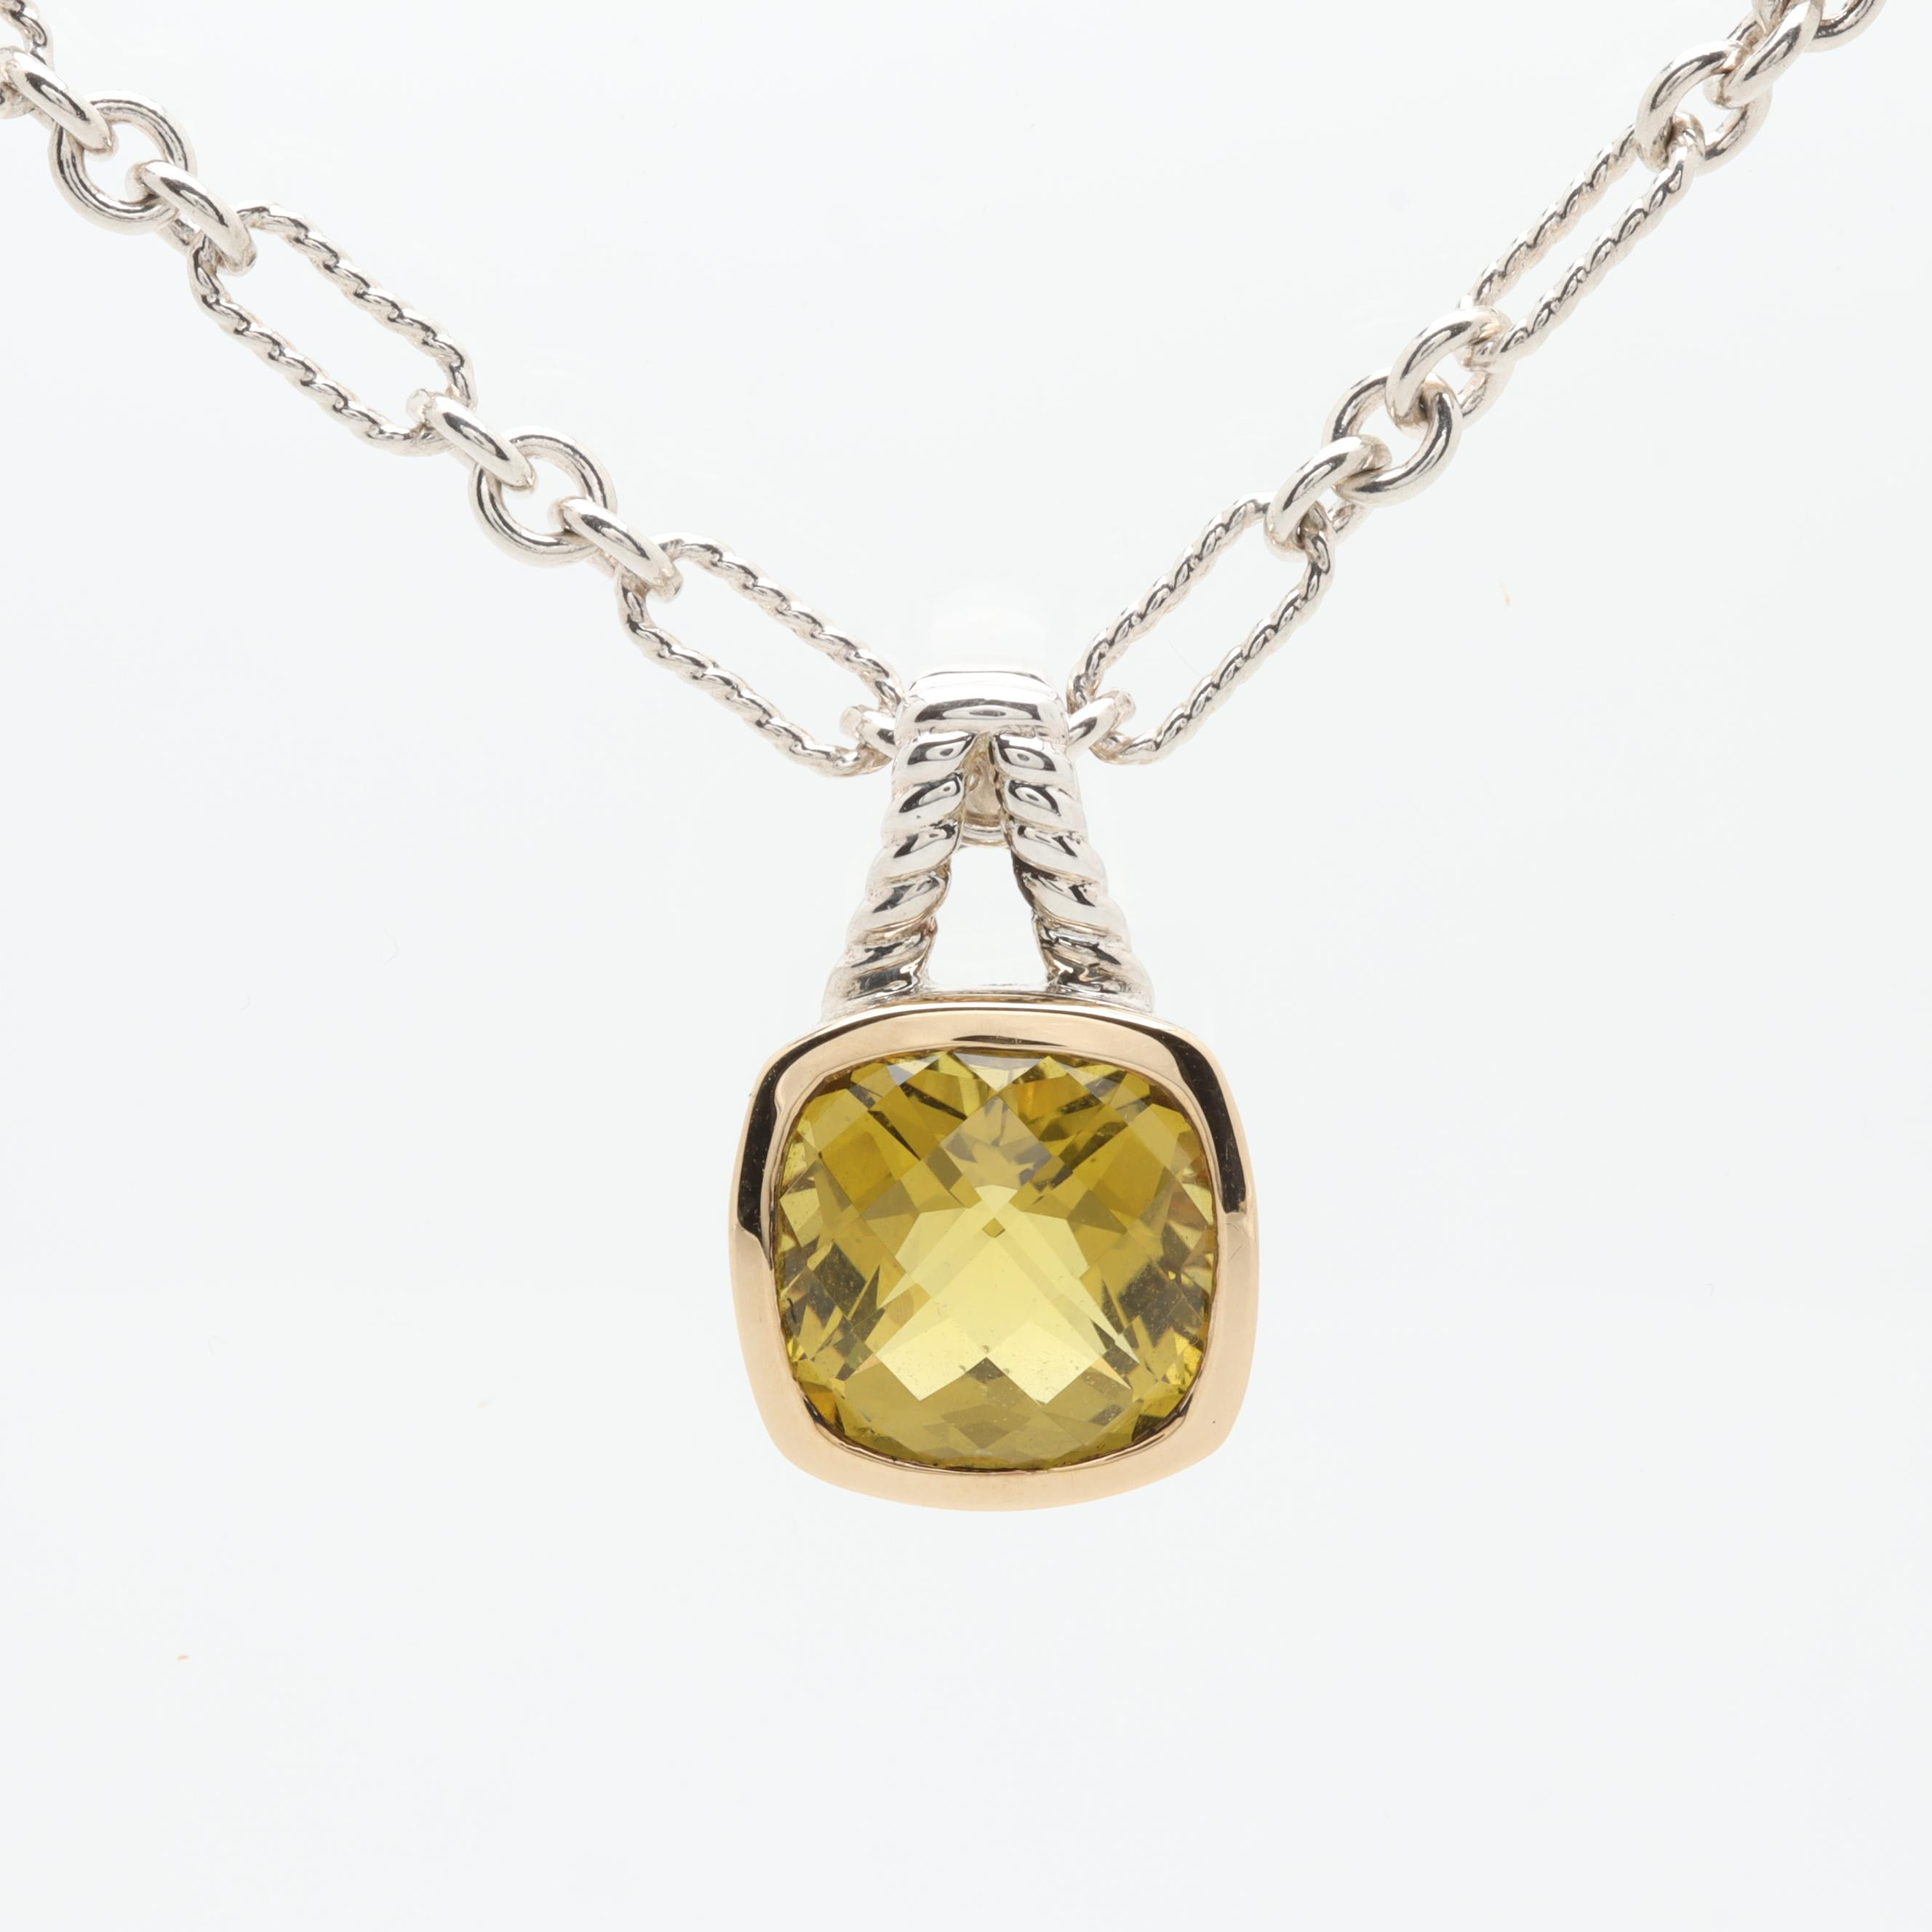 Lorenzo Sterling Silver Citrine Necklace with 18K Yellow Gold Accent